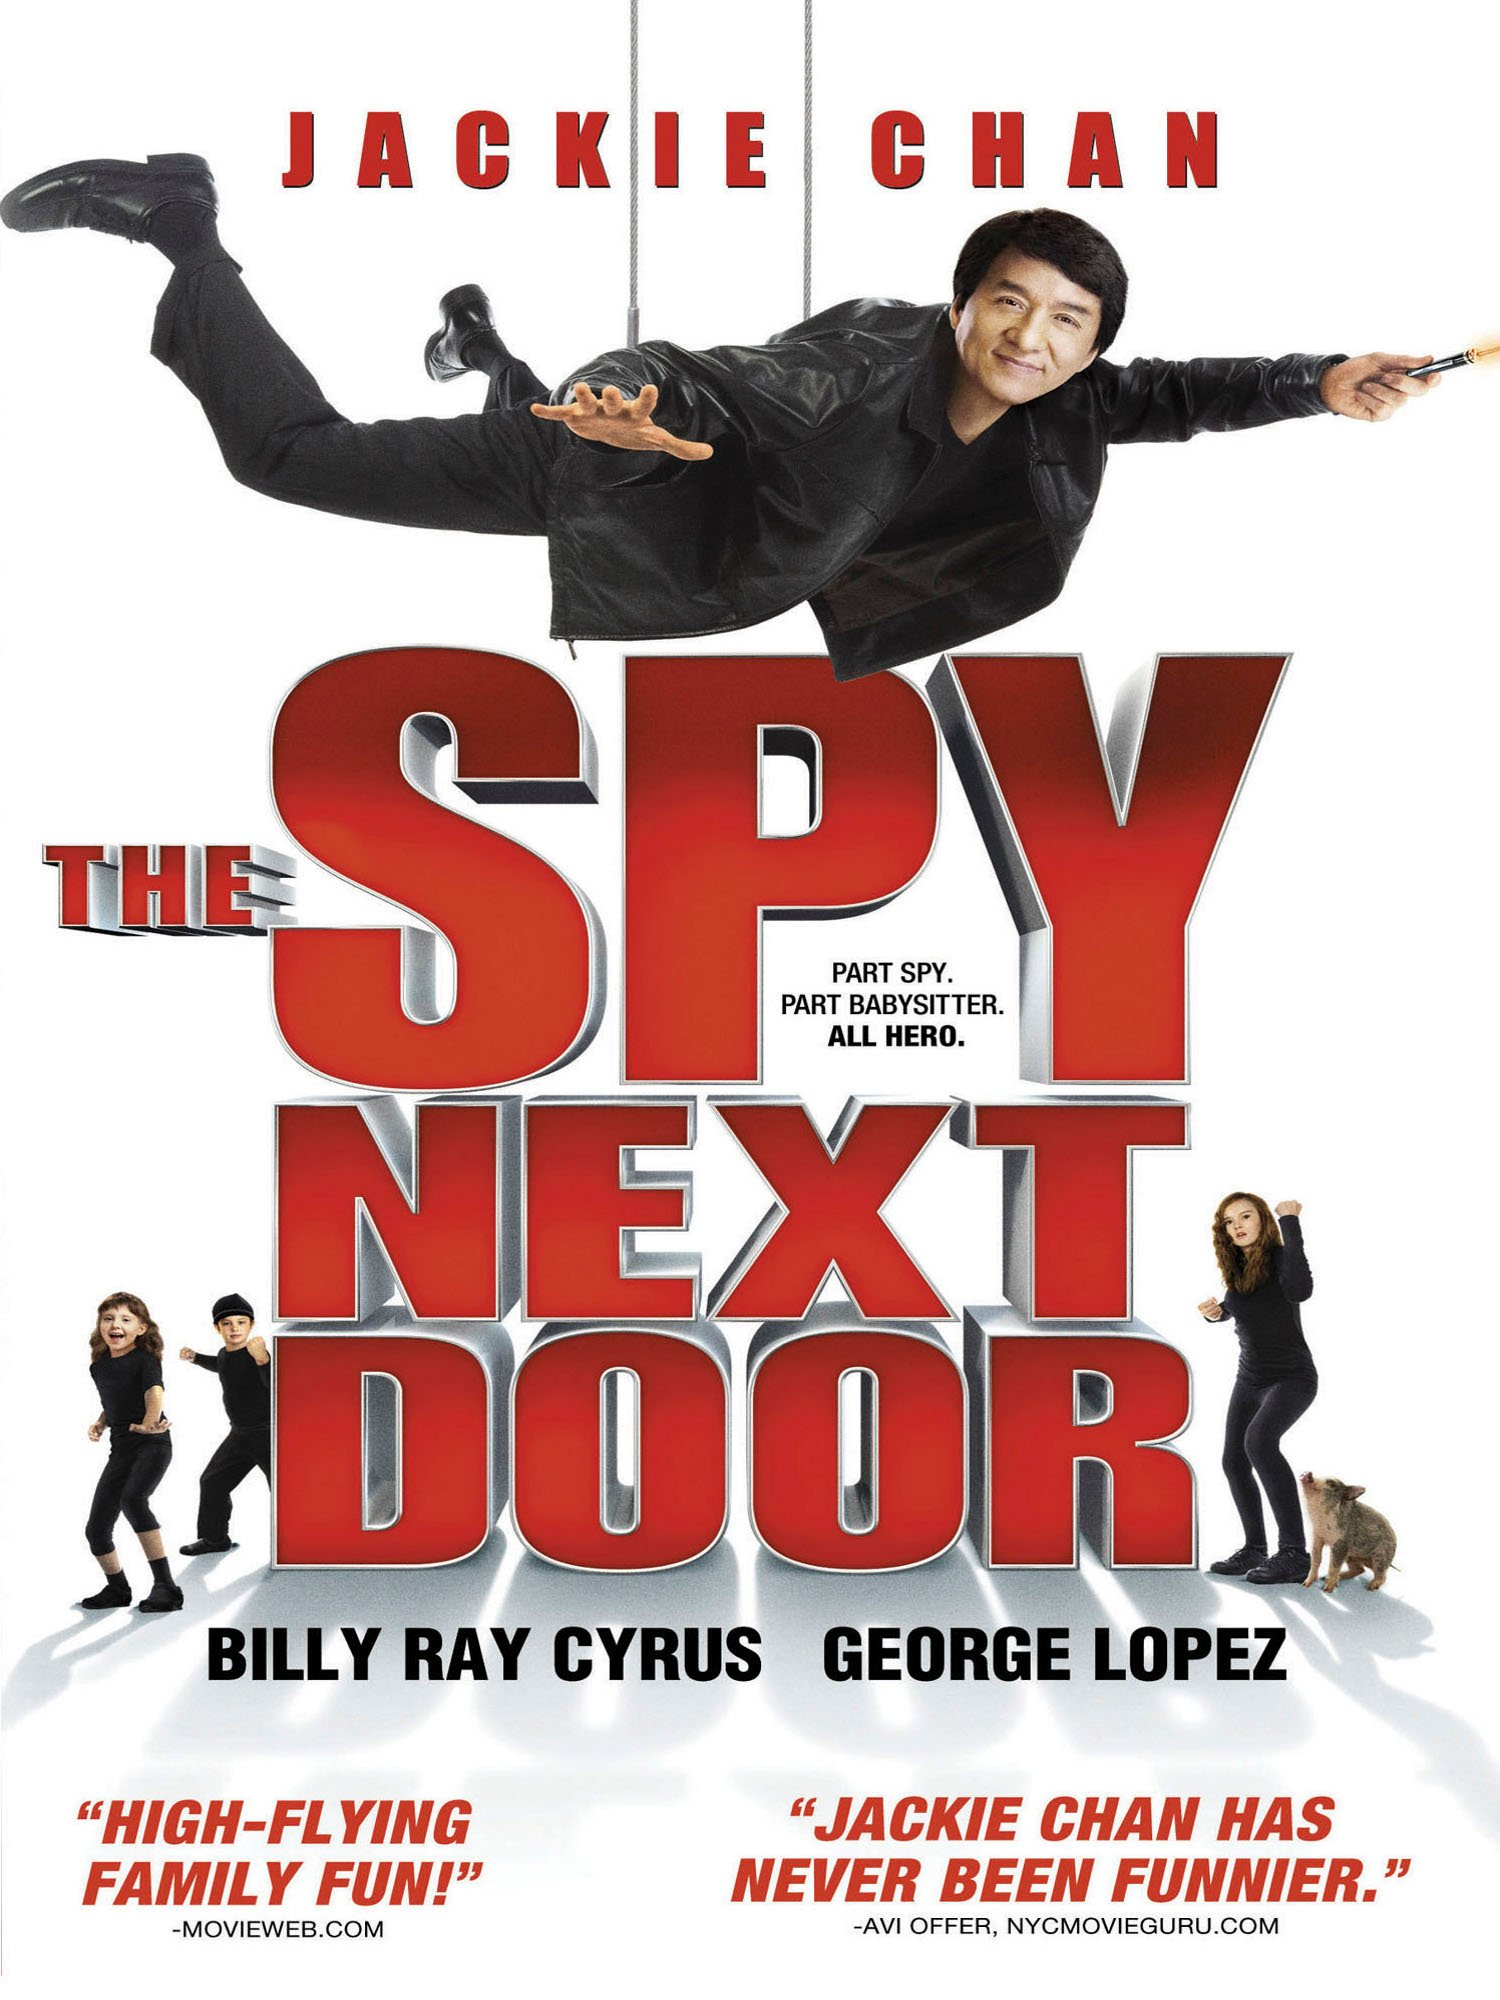 The Spy Next Door by